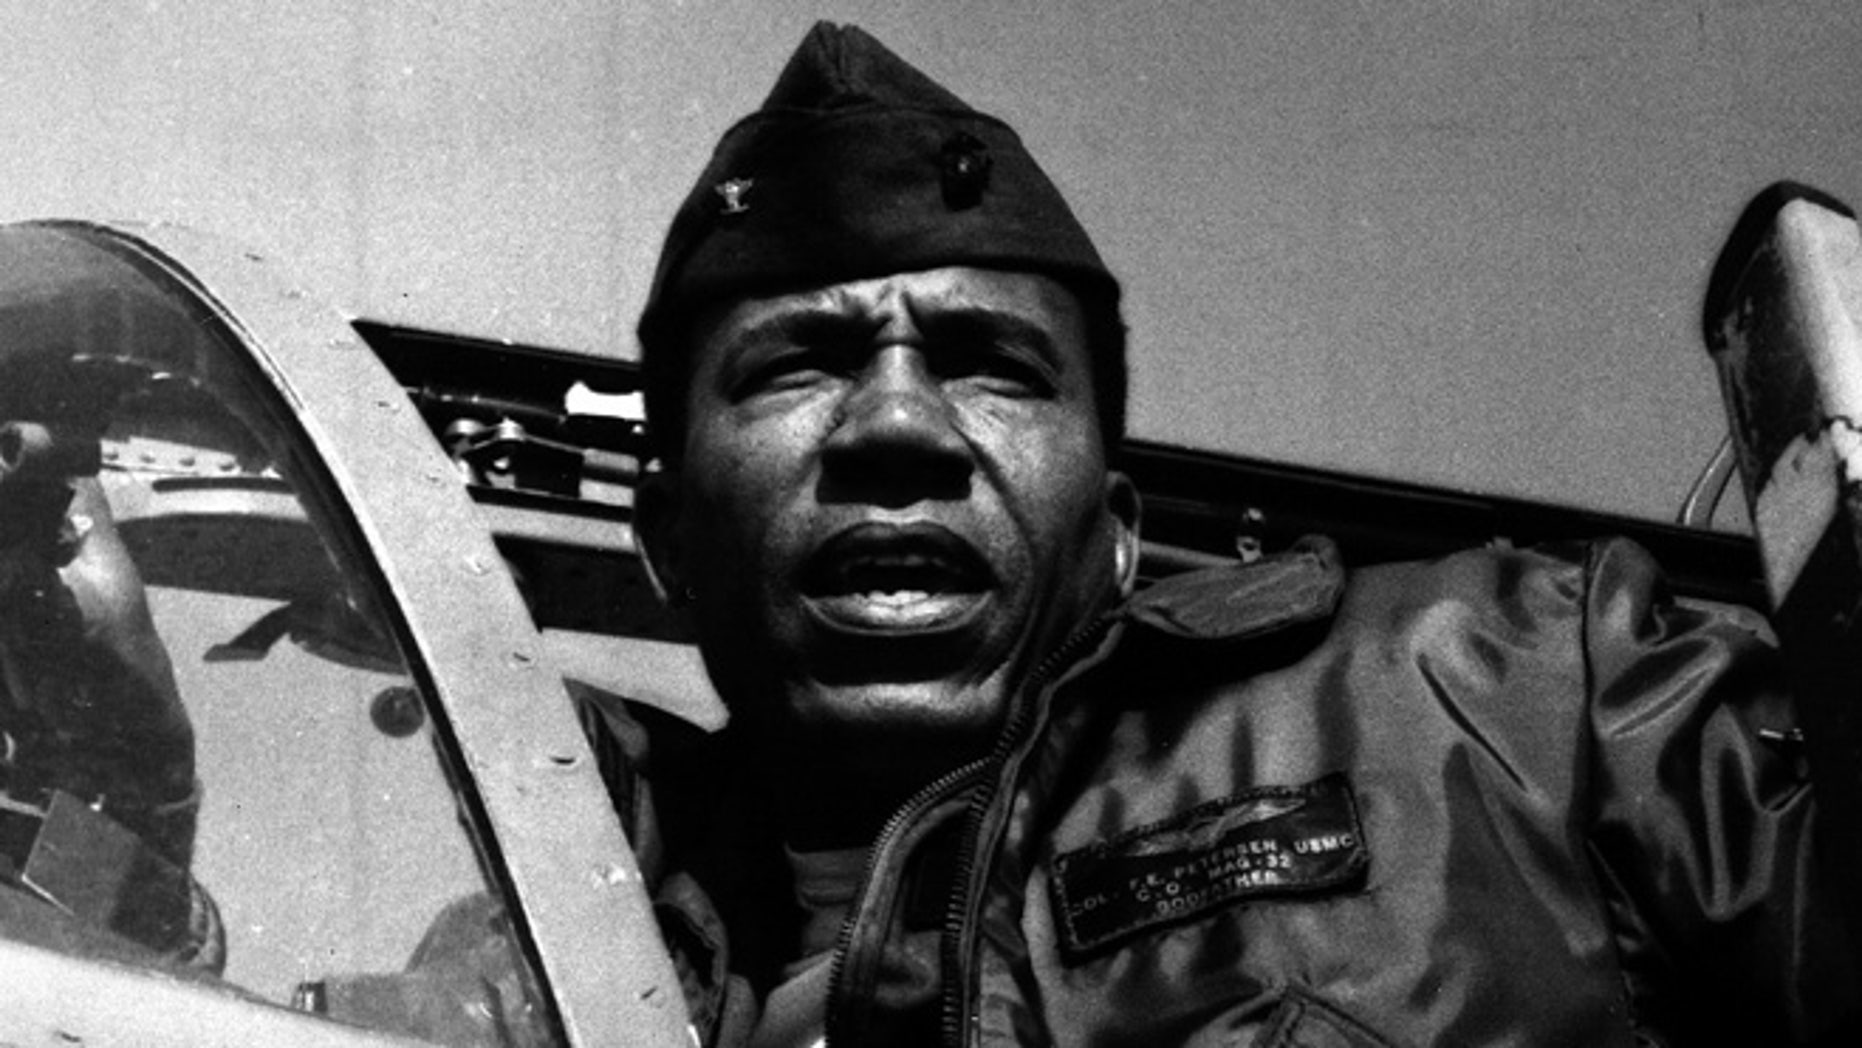 This undated photo provided by the Marine Corps shows Lt. Gen. Frank E. Petersen, Jr., the first black aviator and brigadier general in Marine Corps.